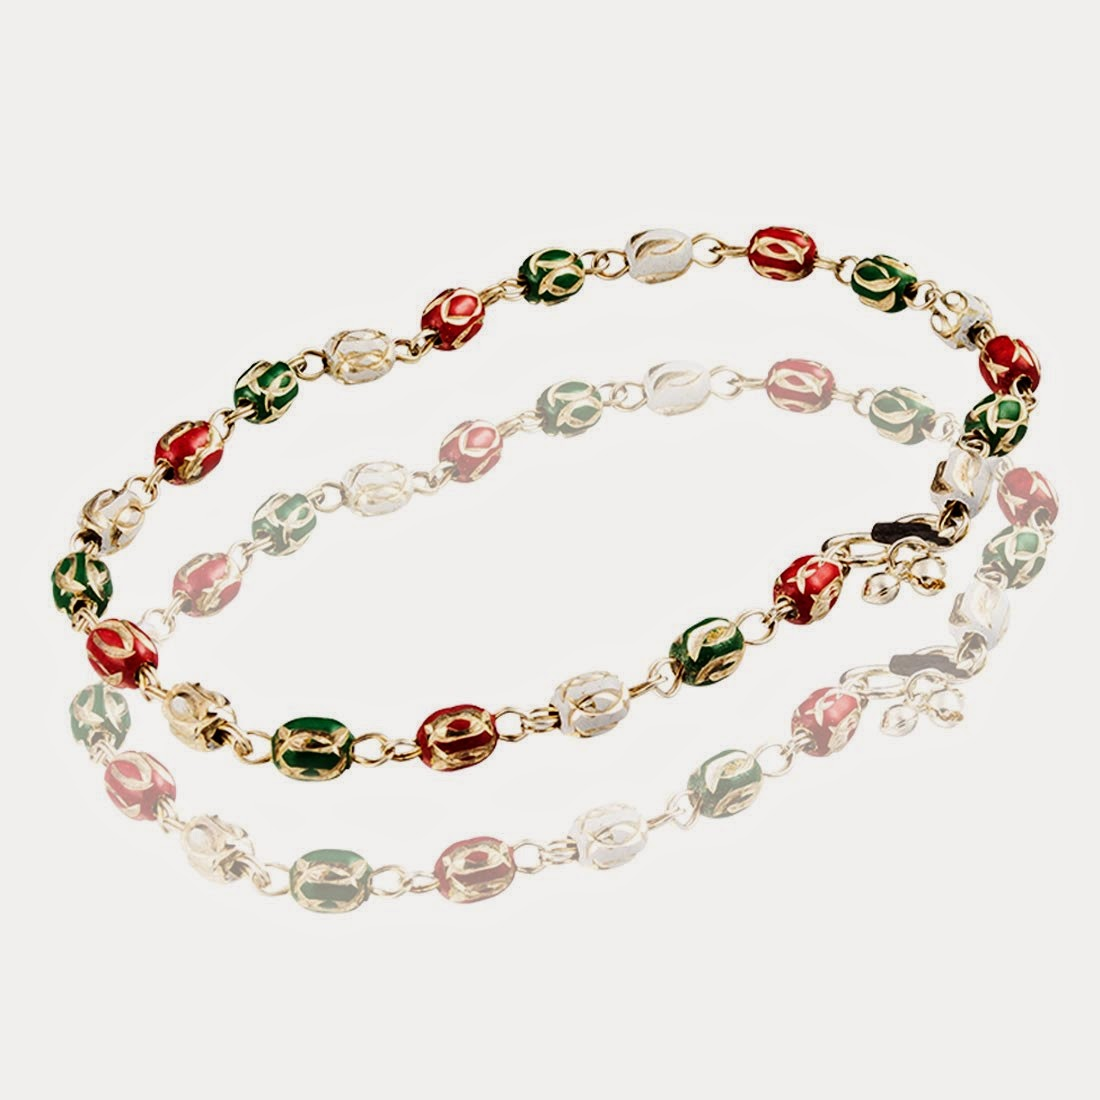 boondi buy for anklets jewellery copy hand of products crafted pure the anklet silver women ko feb online janya